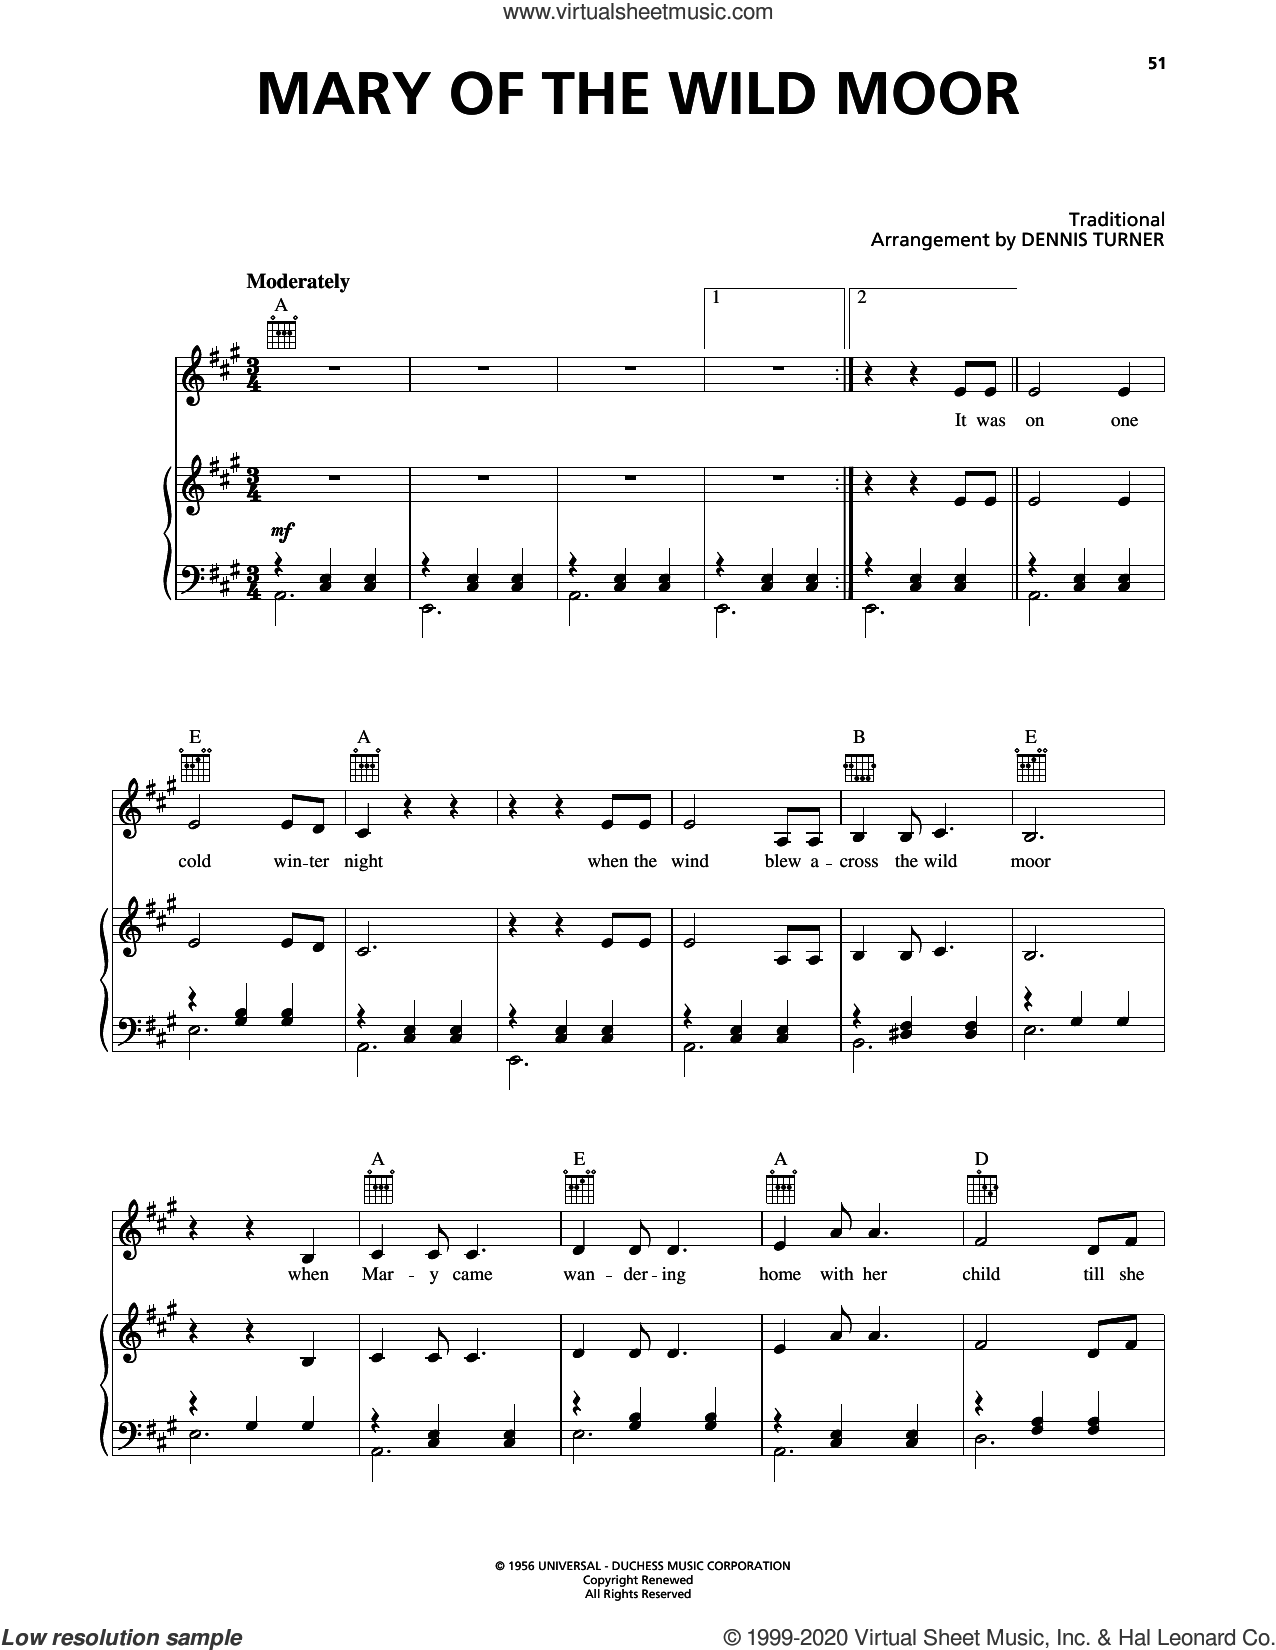 Mary Of The Wild Moor sheet music for voice, piano or guitar by Johnny Cash, Dennis Turner and Miscellaneous, intermediate skill level